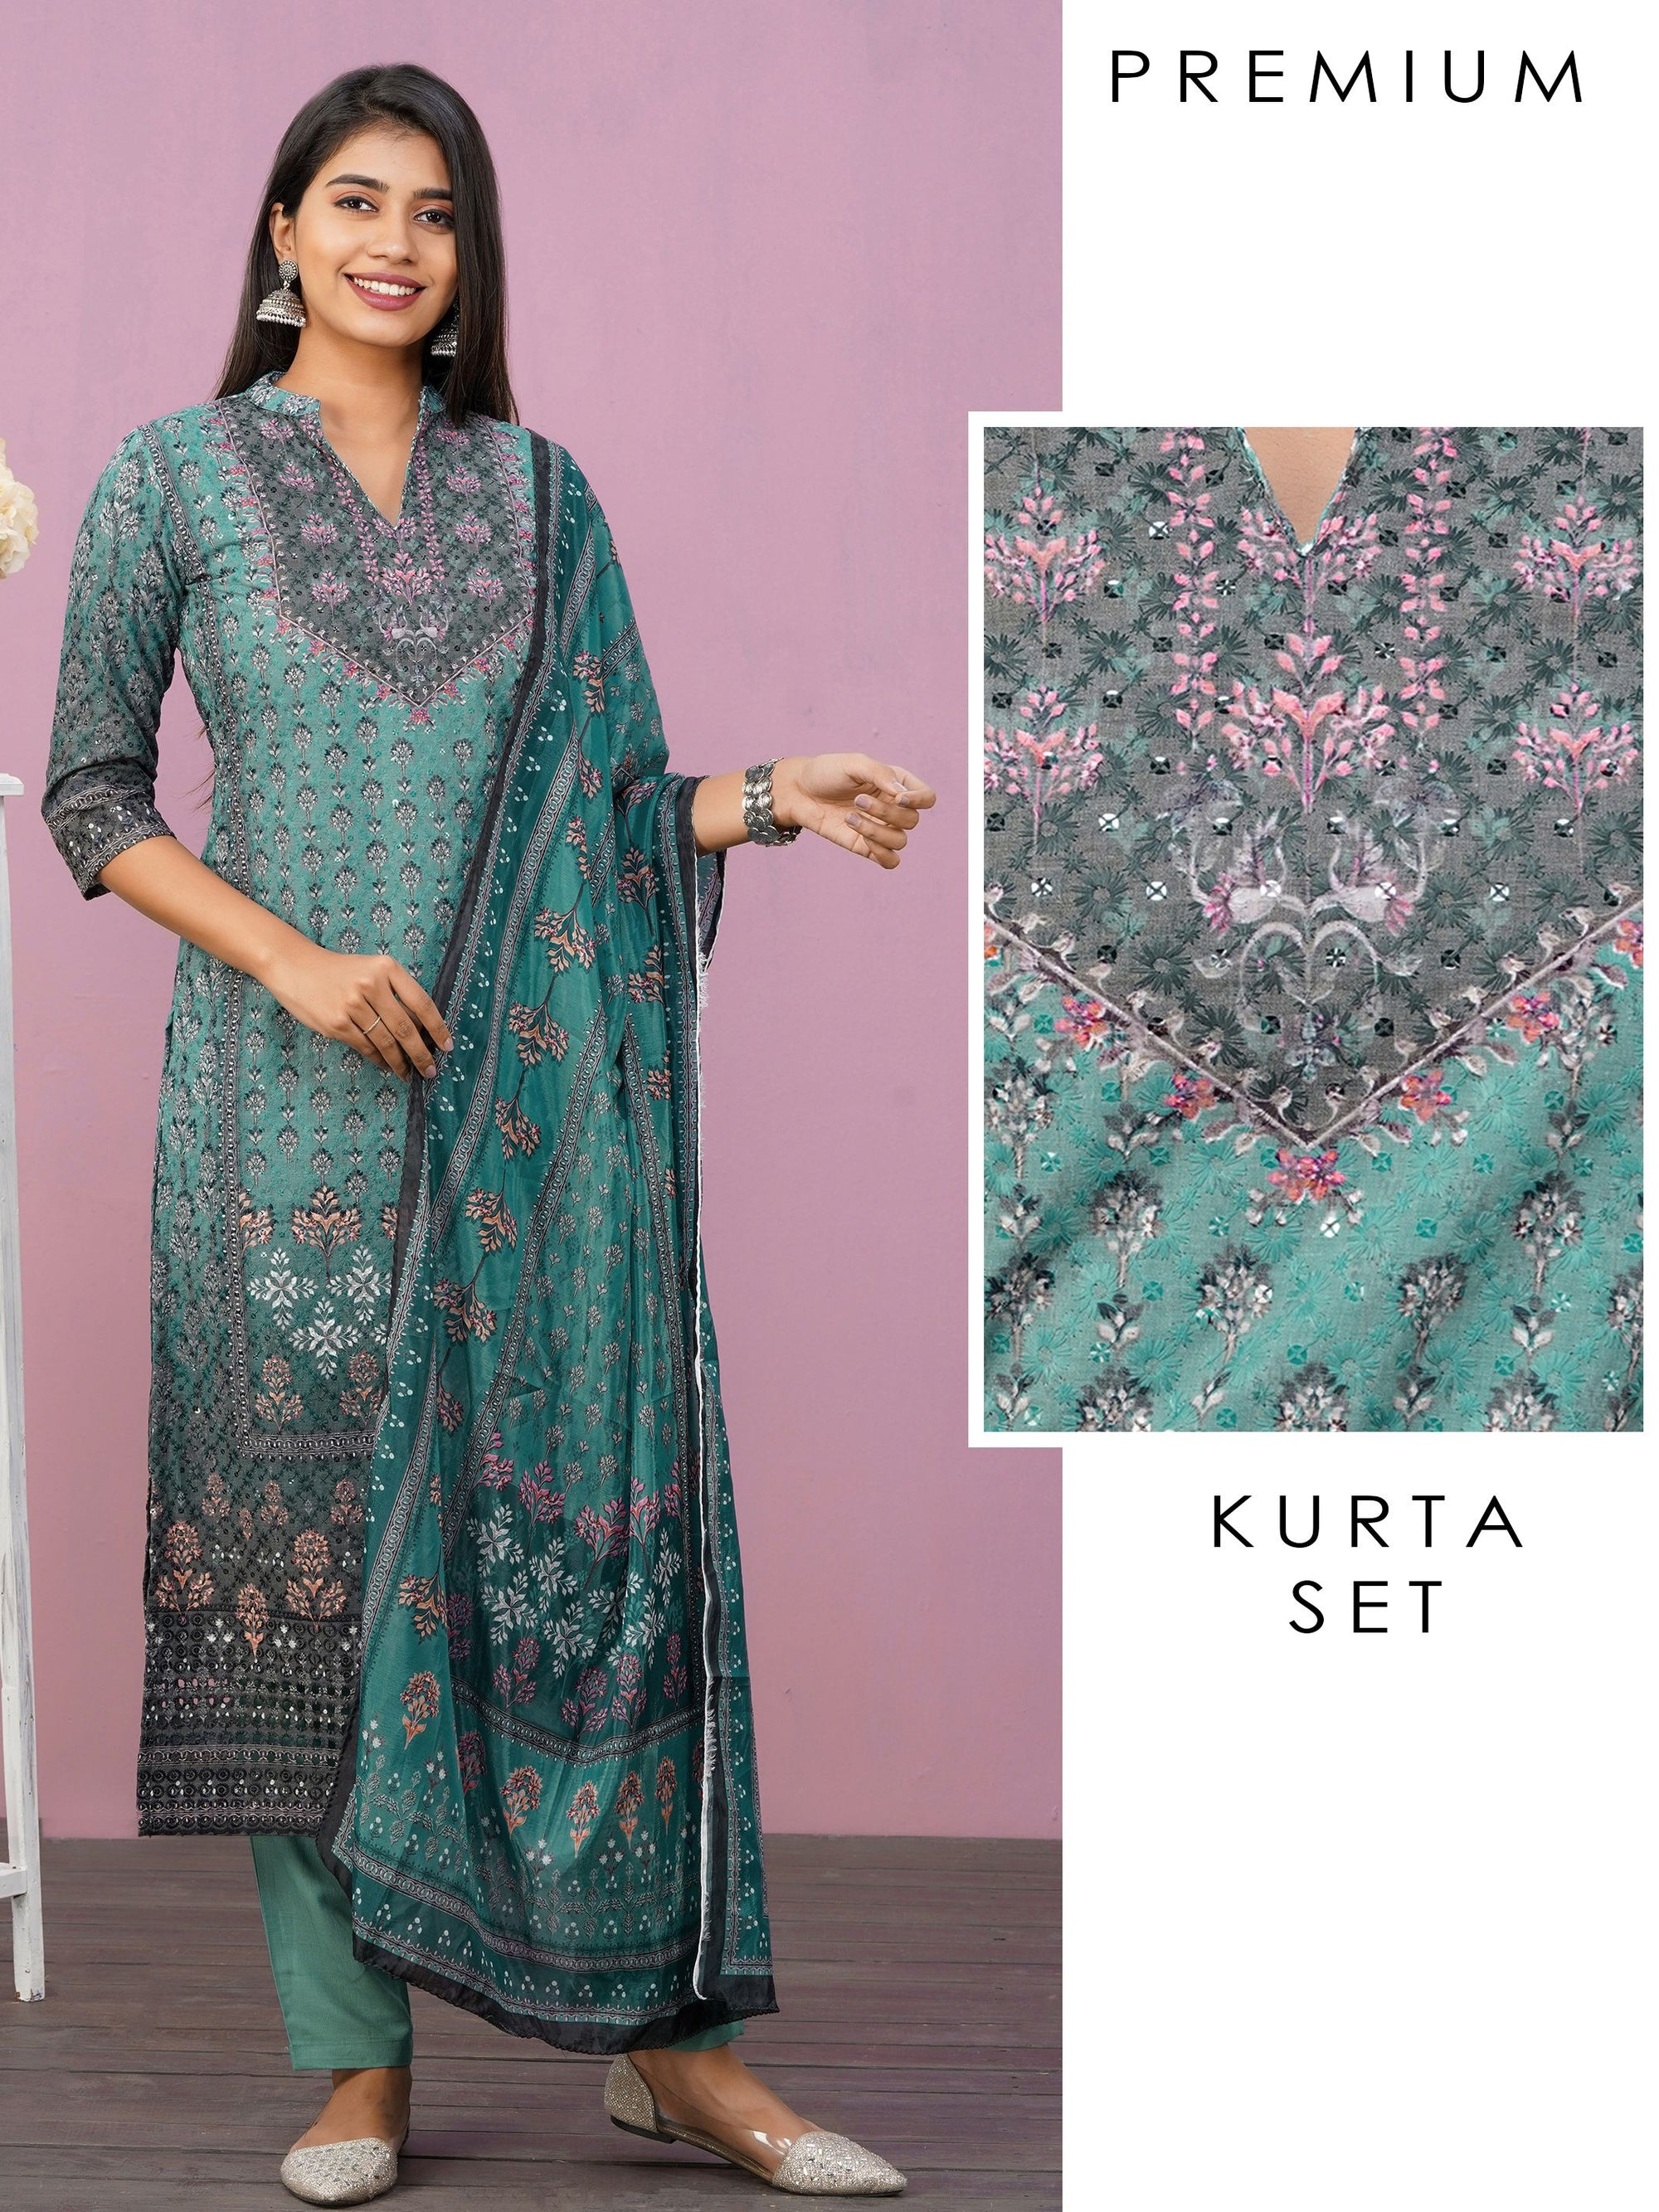 Digital Floral Printed & Hakoba Embroidered Kurti, Pant & Dupatta Set - Teal Green